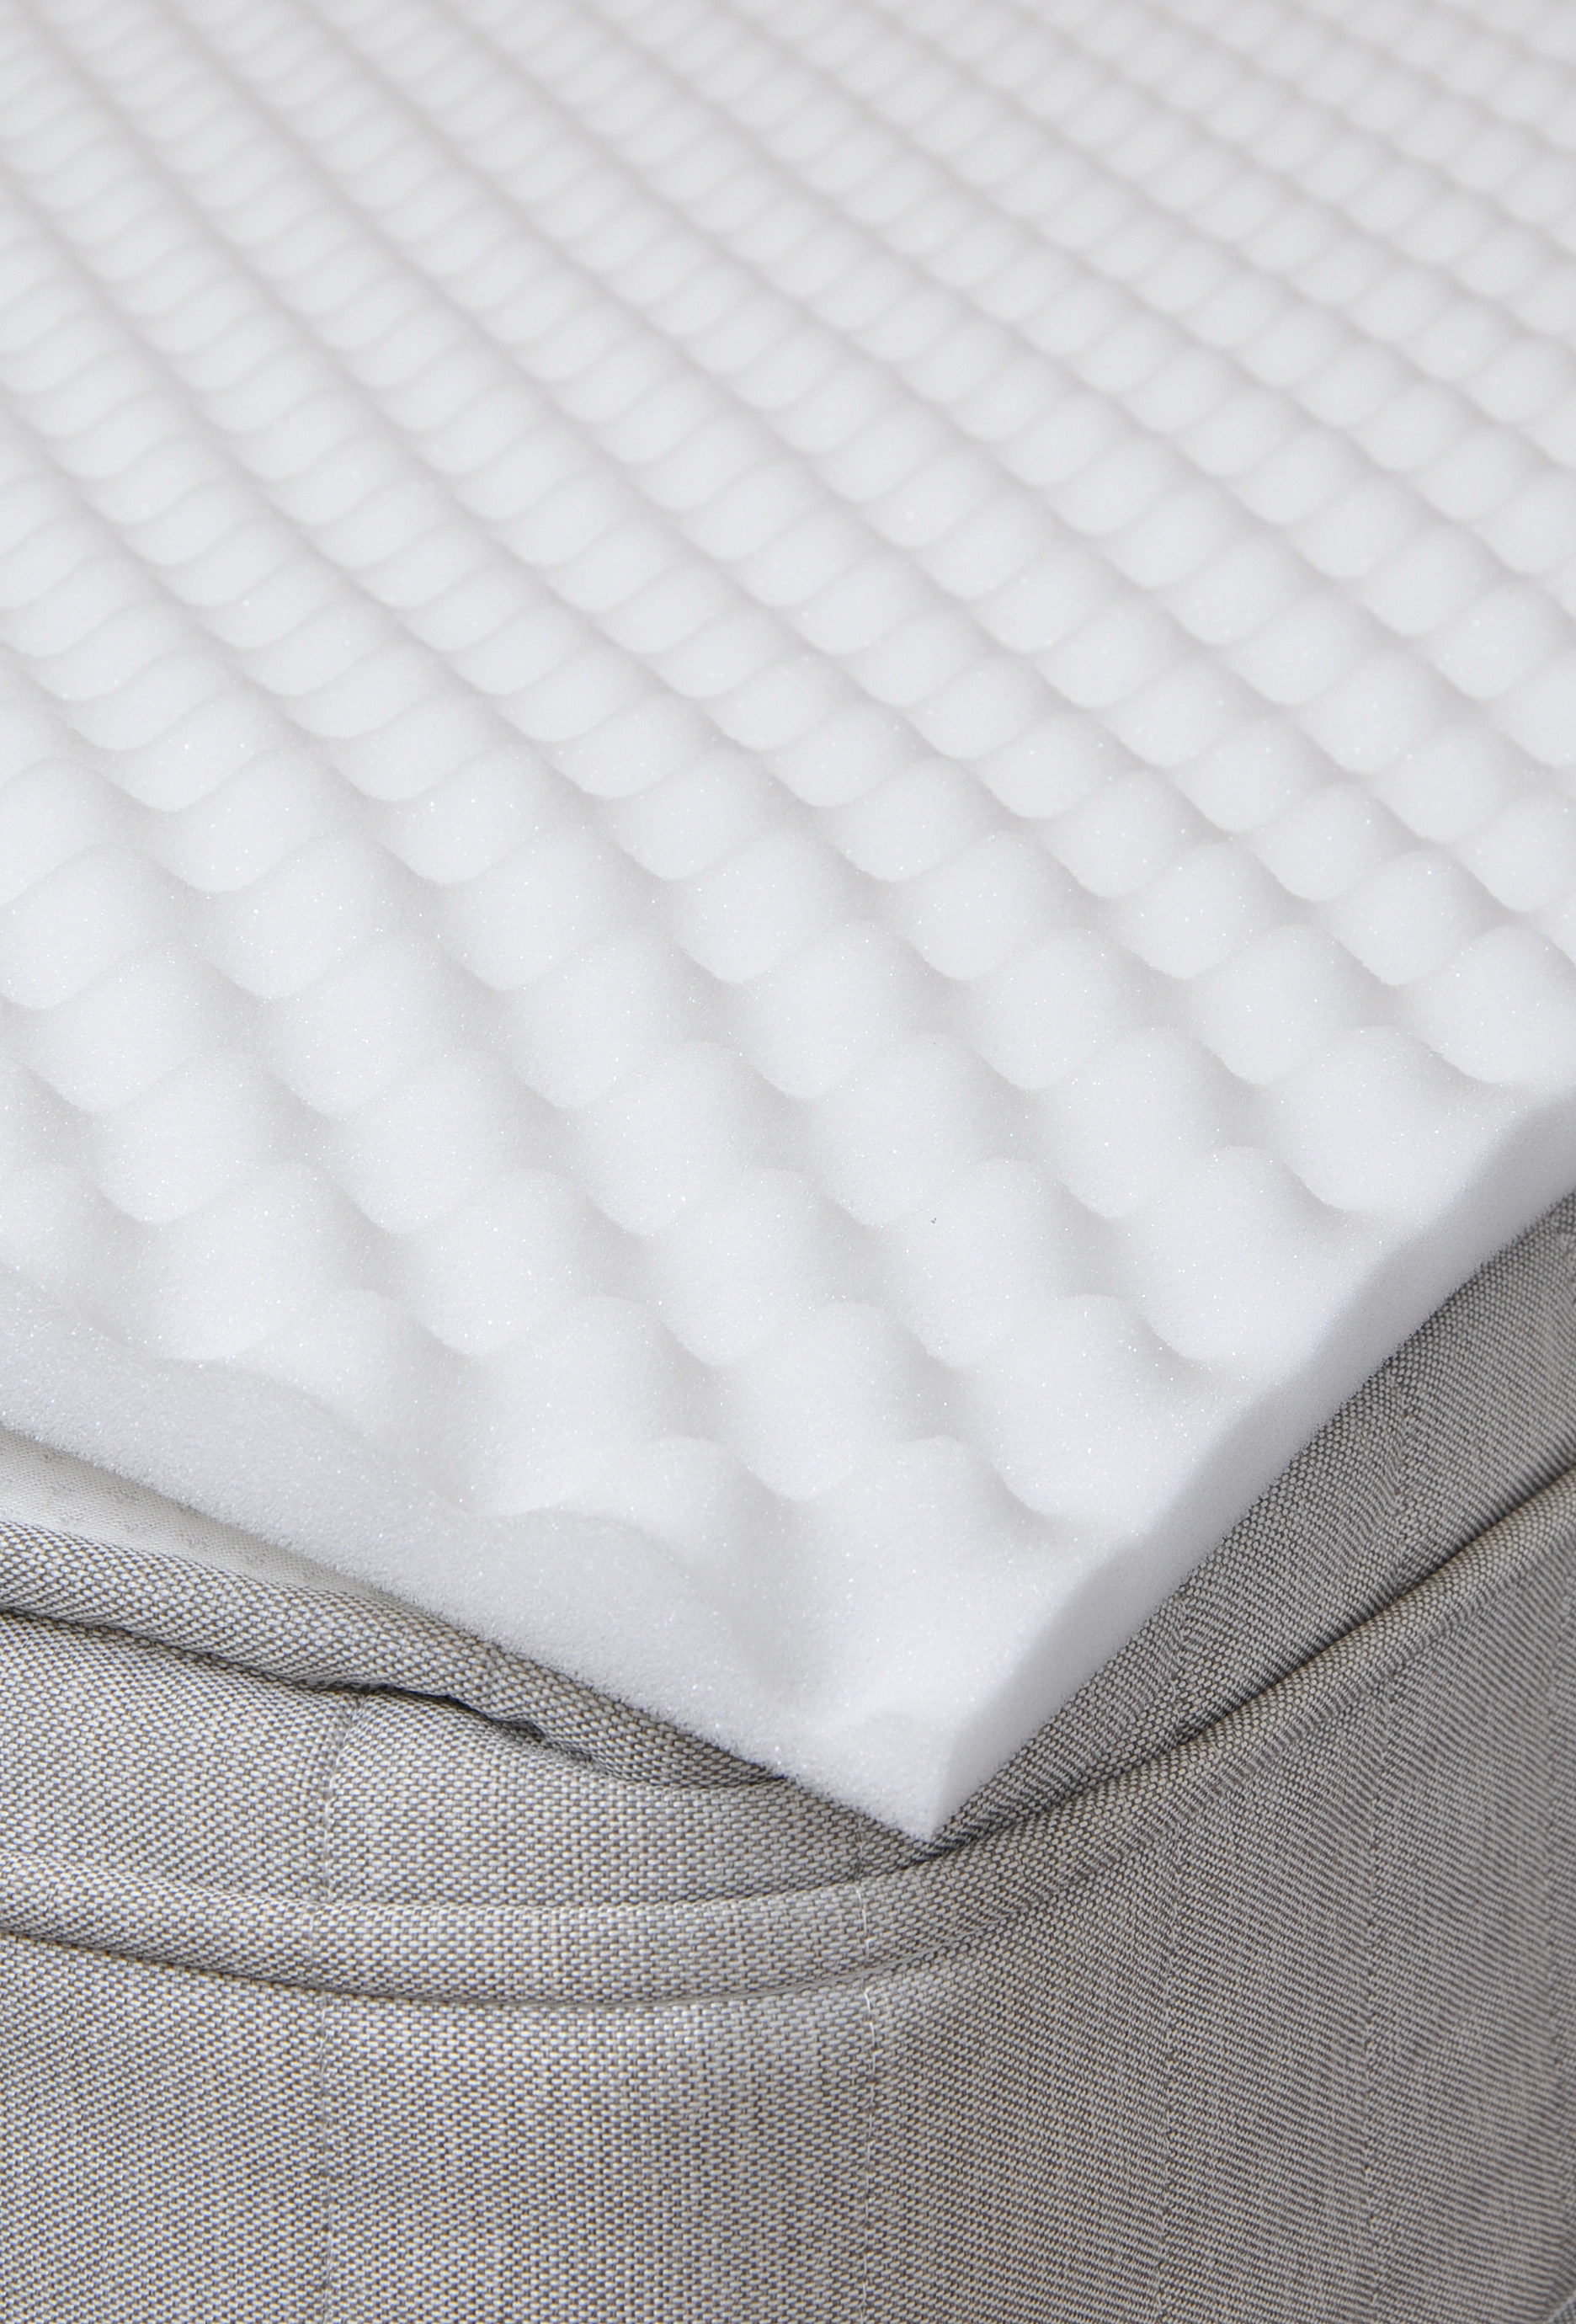 Single Bed Support Egg Box Foam Mattress Topper Ebay